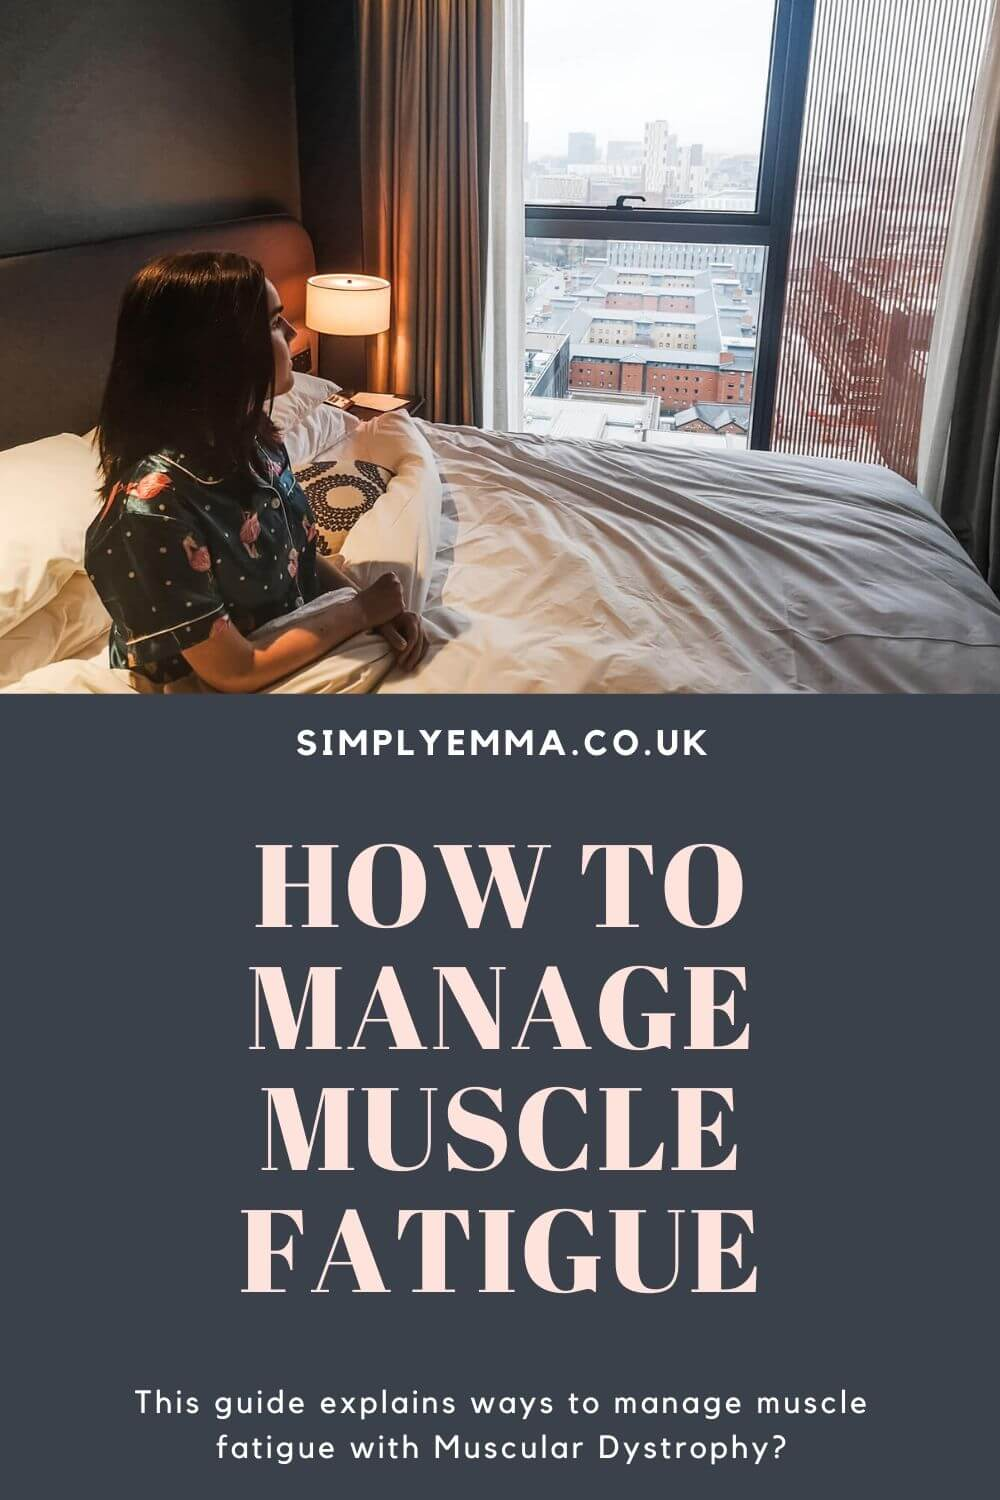 "Emma sitting in bed looking out the window. Text below reads ""Simplyemma.co.uk. How to manage muscle fatigue. This guide explains ways to manage muscle fatigue with Muscular Dystrophy?"""